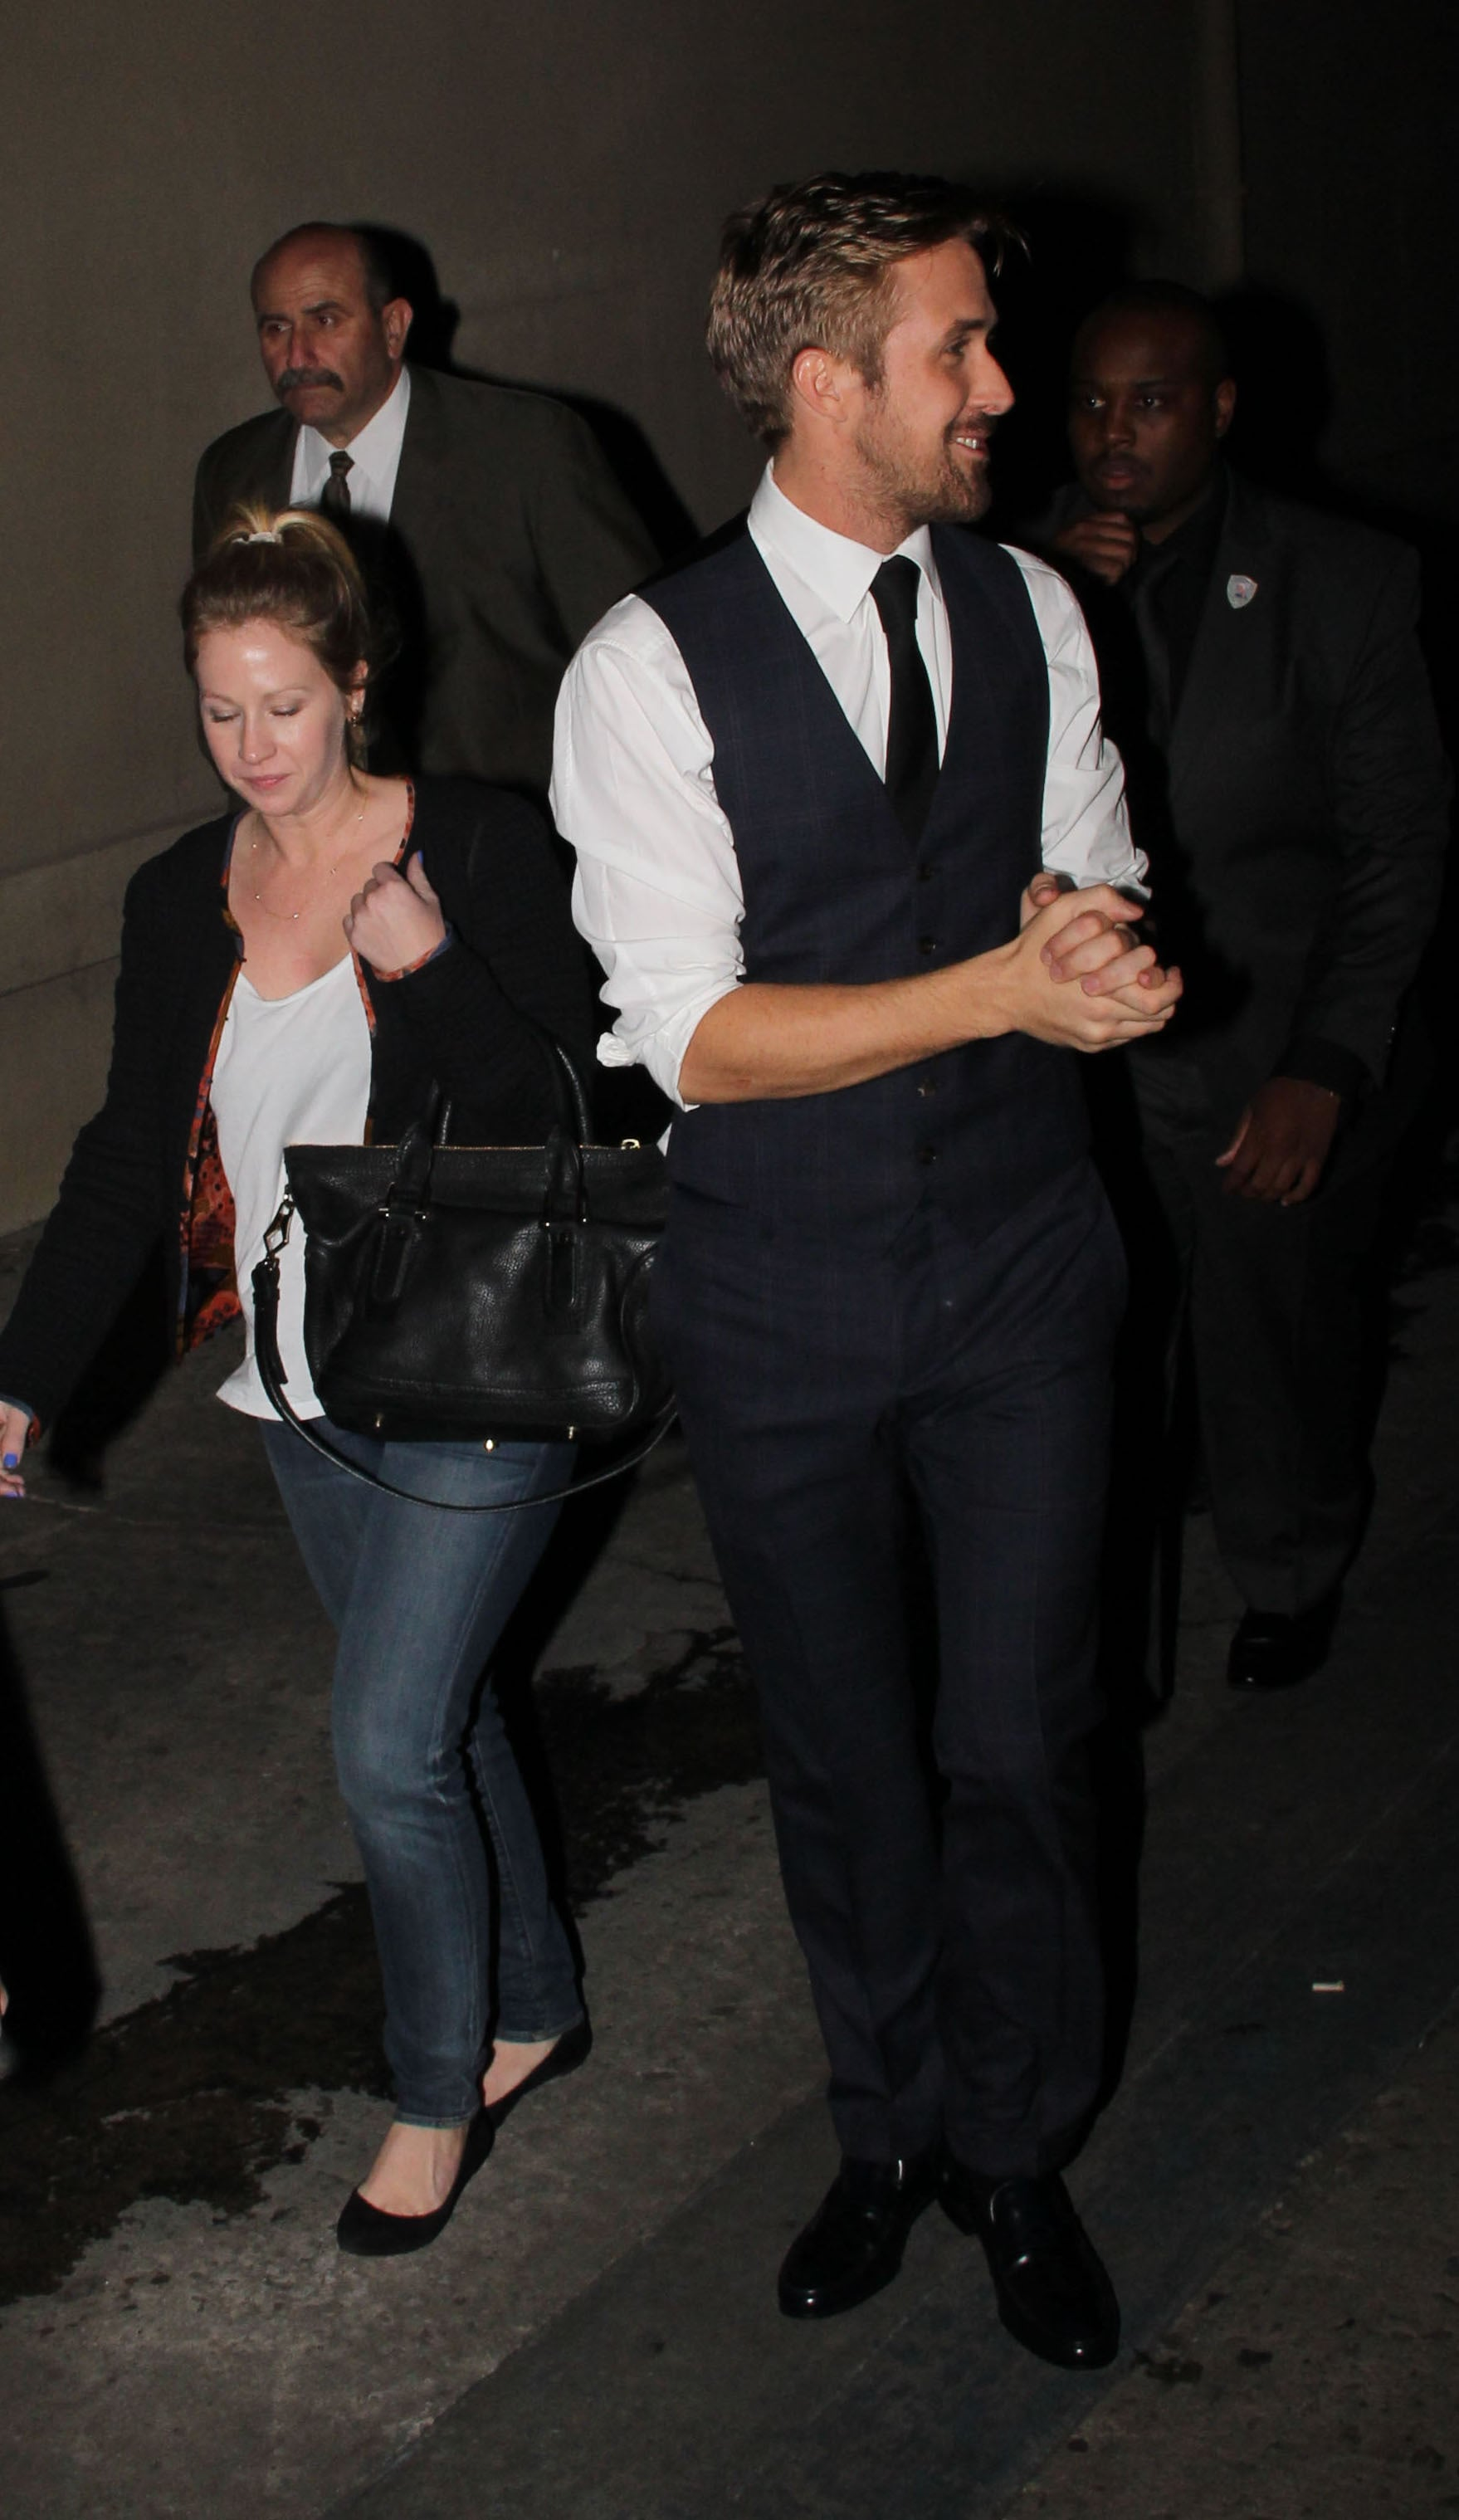 Ryan Gosling had a smile on his face as he departed after his appearance on Jimmy Kimmel Live!